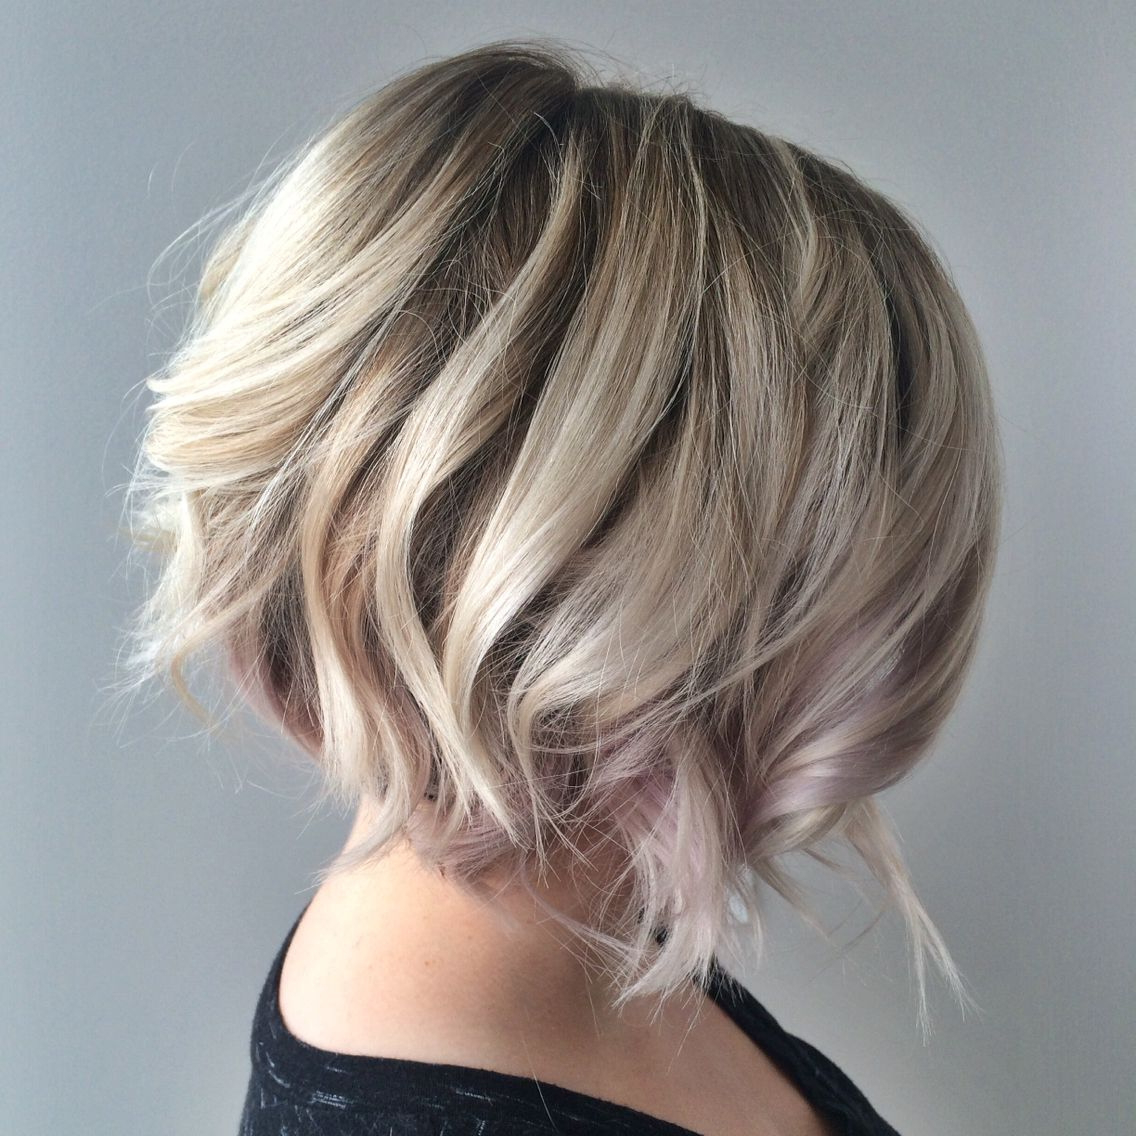 2019 Stacked Bob Hairstyle New Blonde Textured Bob With Undercut Throughout Stacked Blonde Balayage Bob Hairstyles (View 18 of 20)